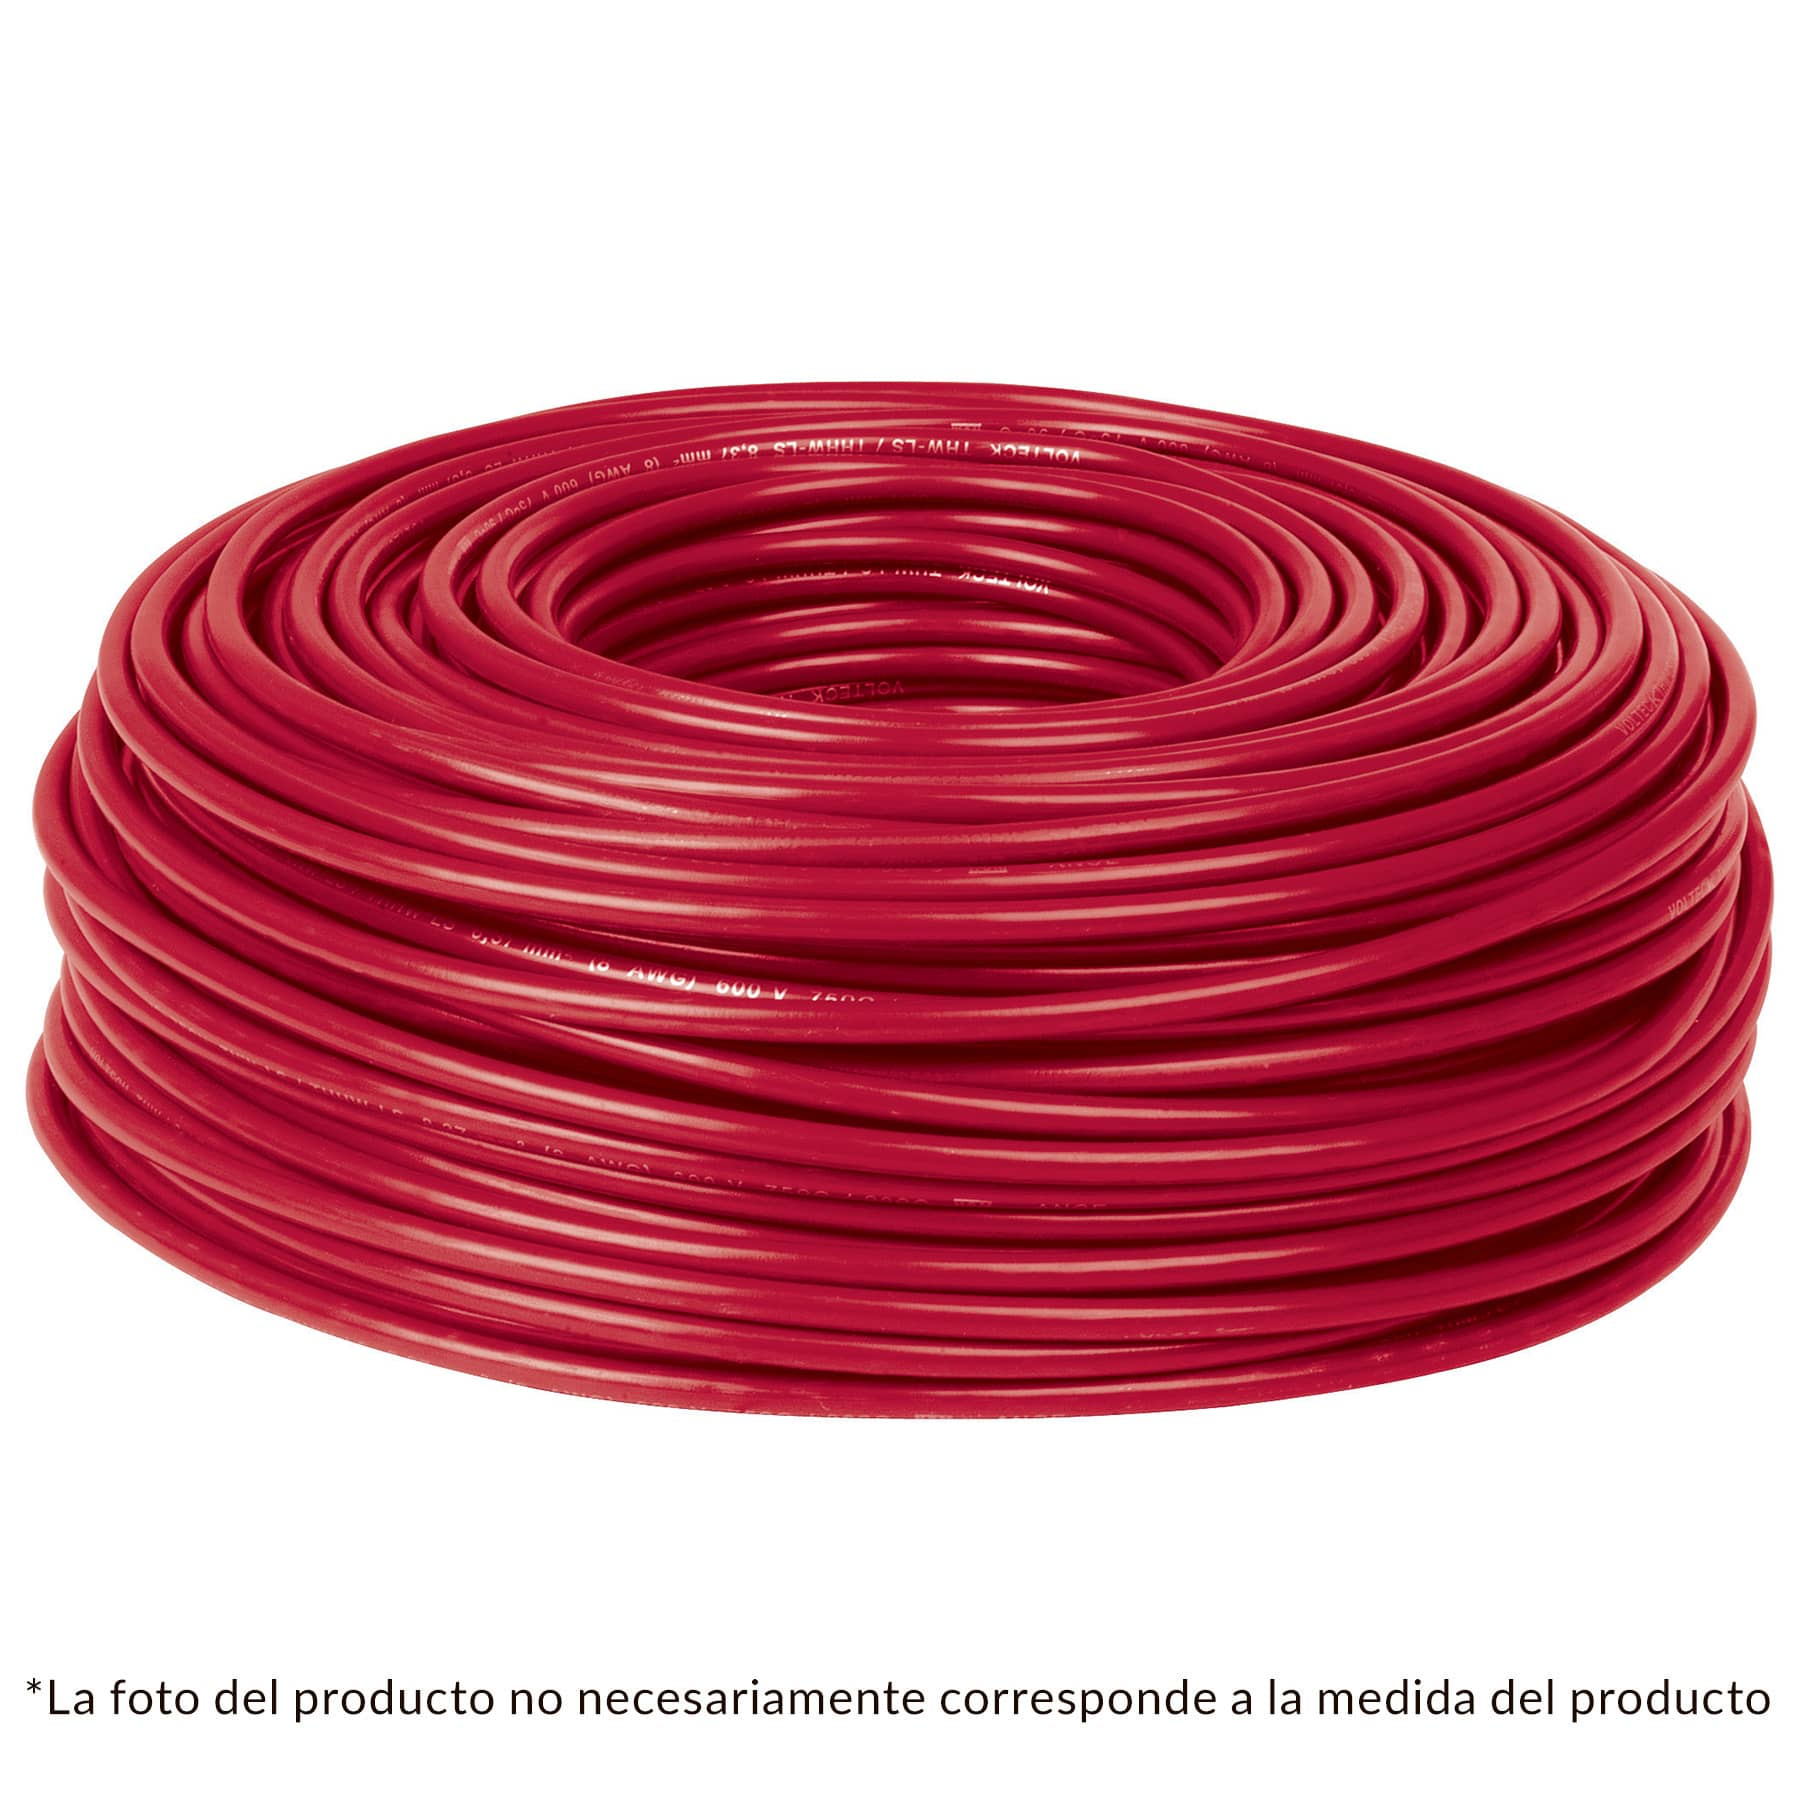 Cable THHW-LS, 14 AWG, color rojo rollo 100 m